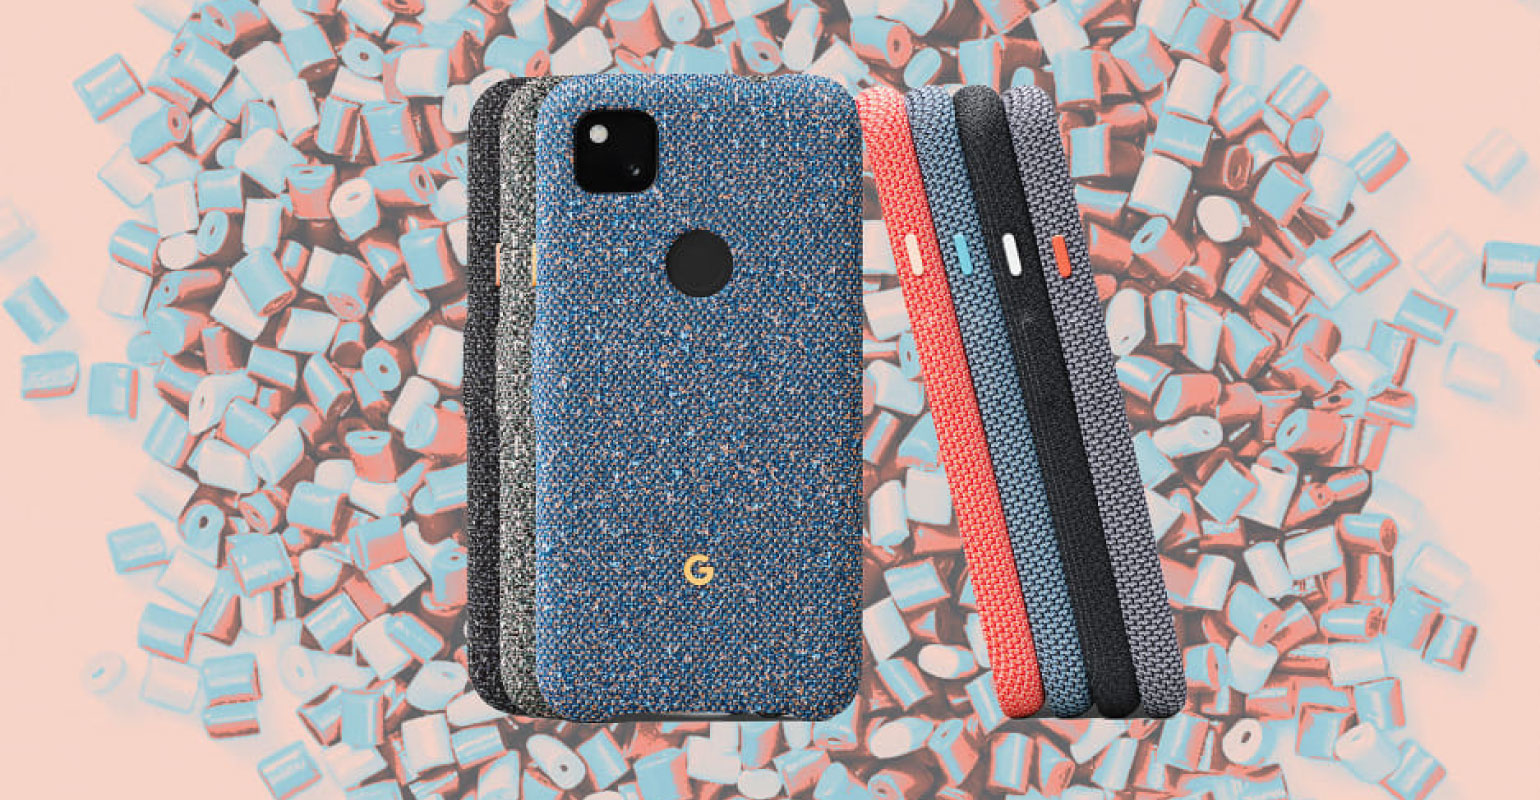 From Plastic Bottles to Google's New Sustainable Phone Case - waste360